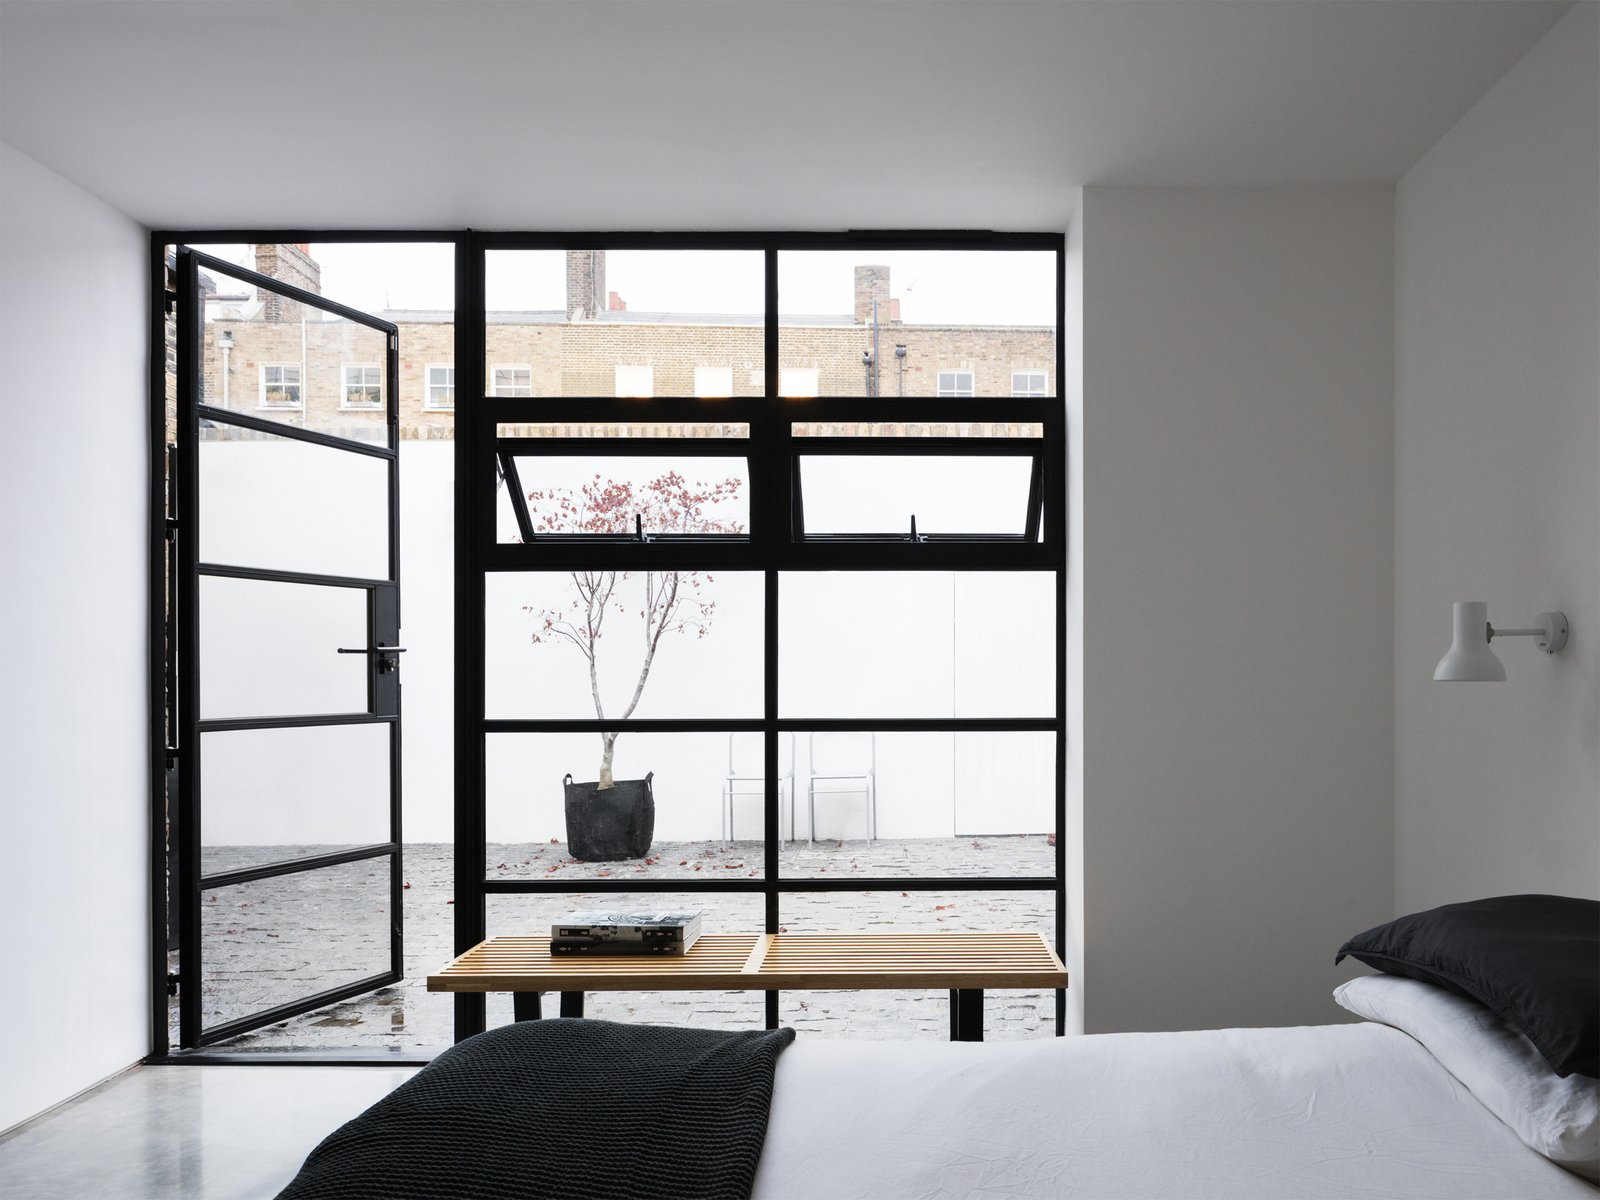 Bedroom, Bench, Concrete Floor, Wall Lighting, and Bed A interior courtyard is accessible from the bedroom, providing an unexpected secluded oasis right in the heart of an urban setting.   Photo 4 of 12 in A Forgotten Warehouse Is Reborn Into a Light-Filled London Home